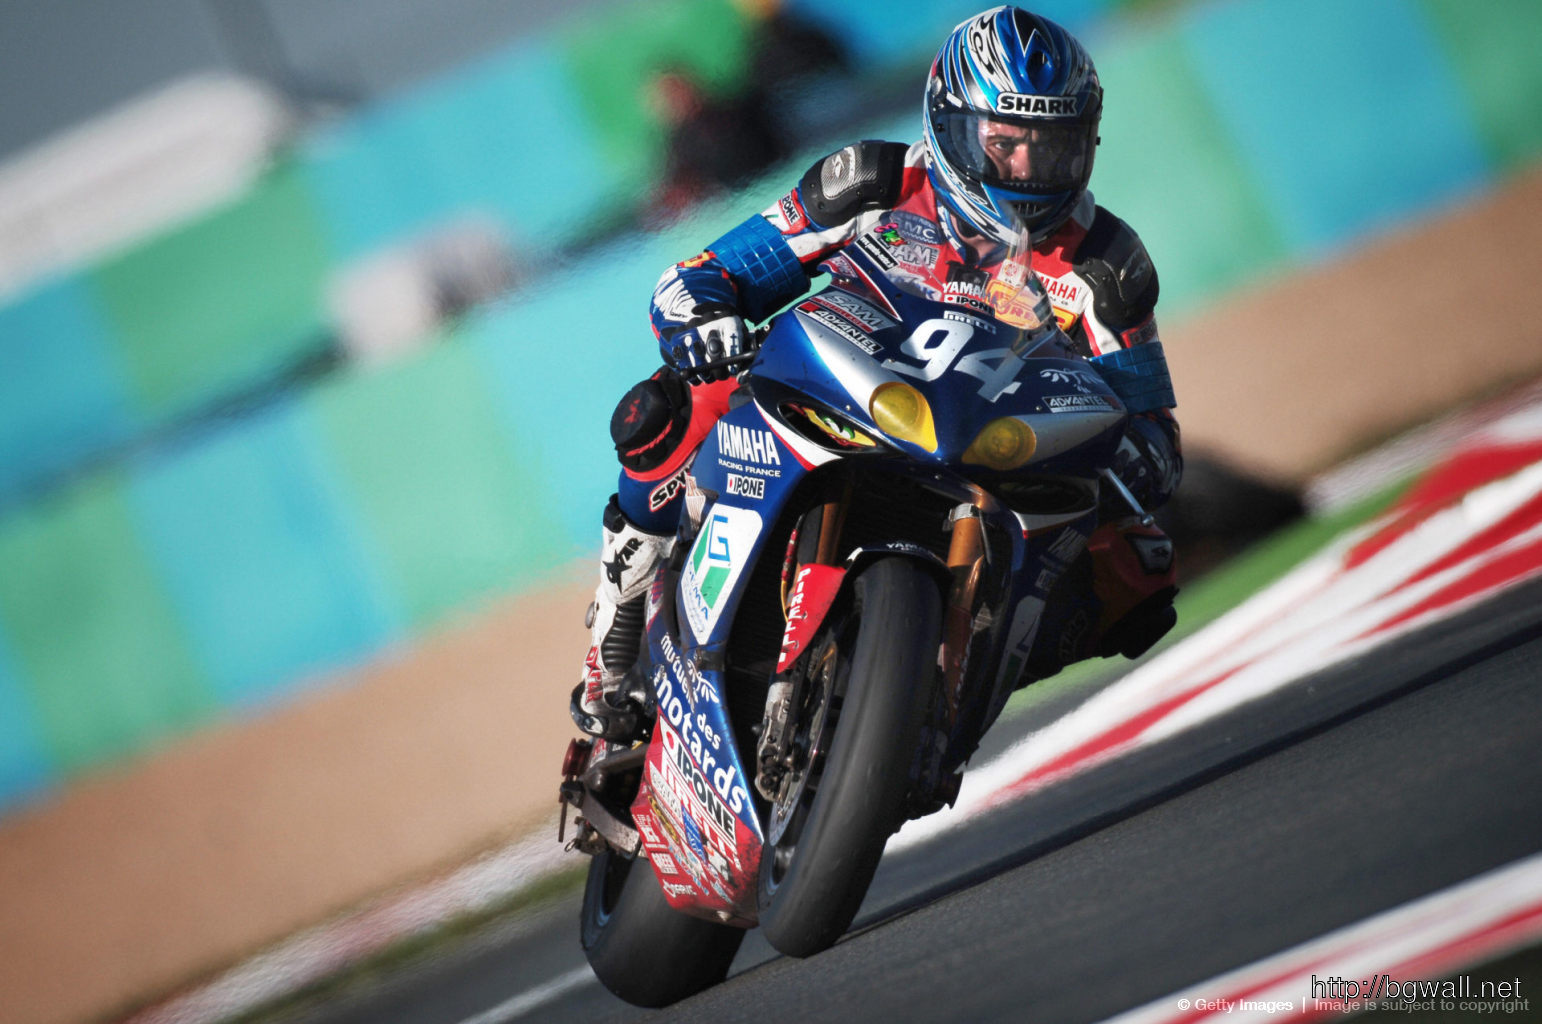 Yamaha Gmt 94s French Pilot Sebastien G Full Size